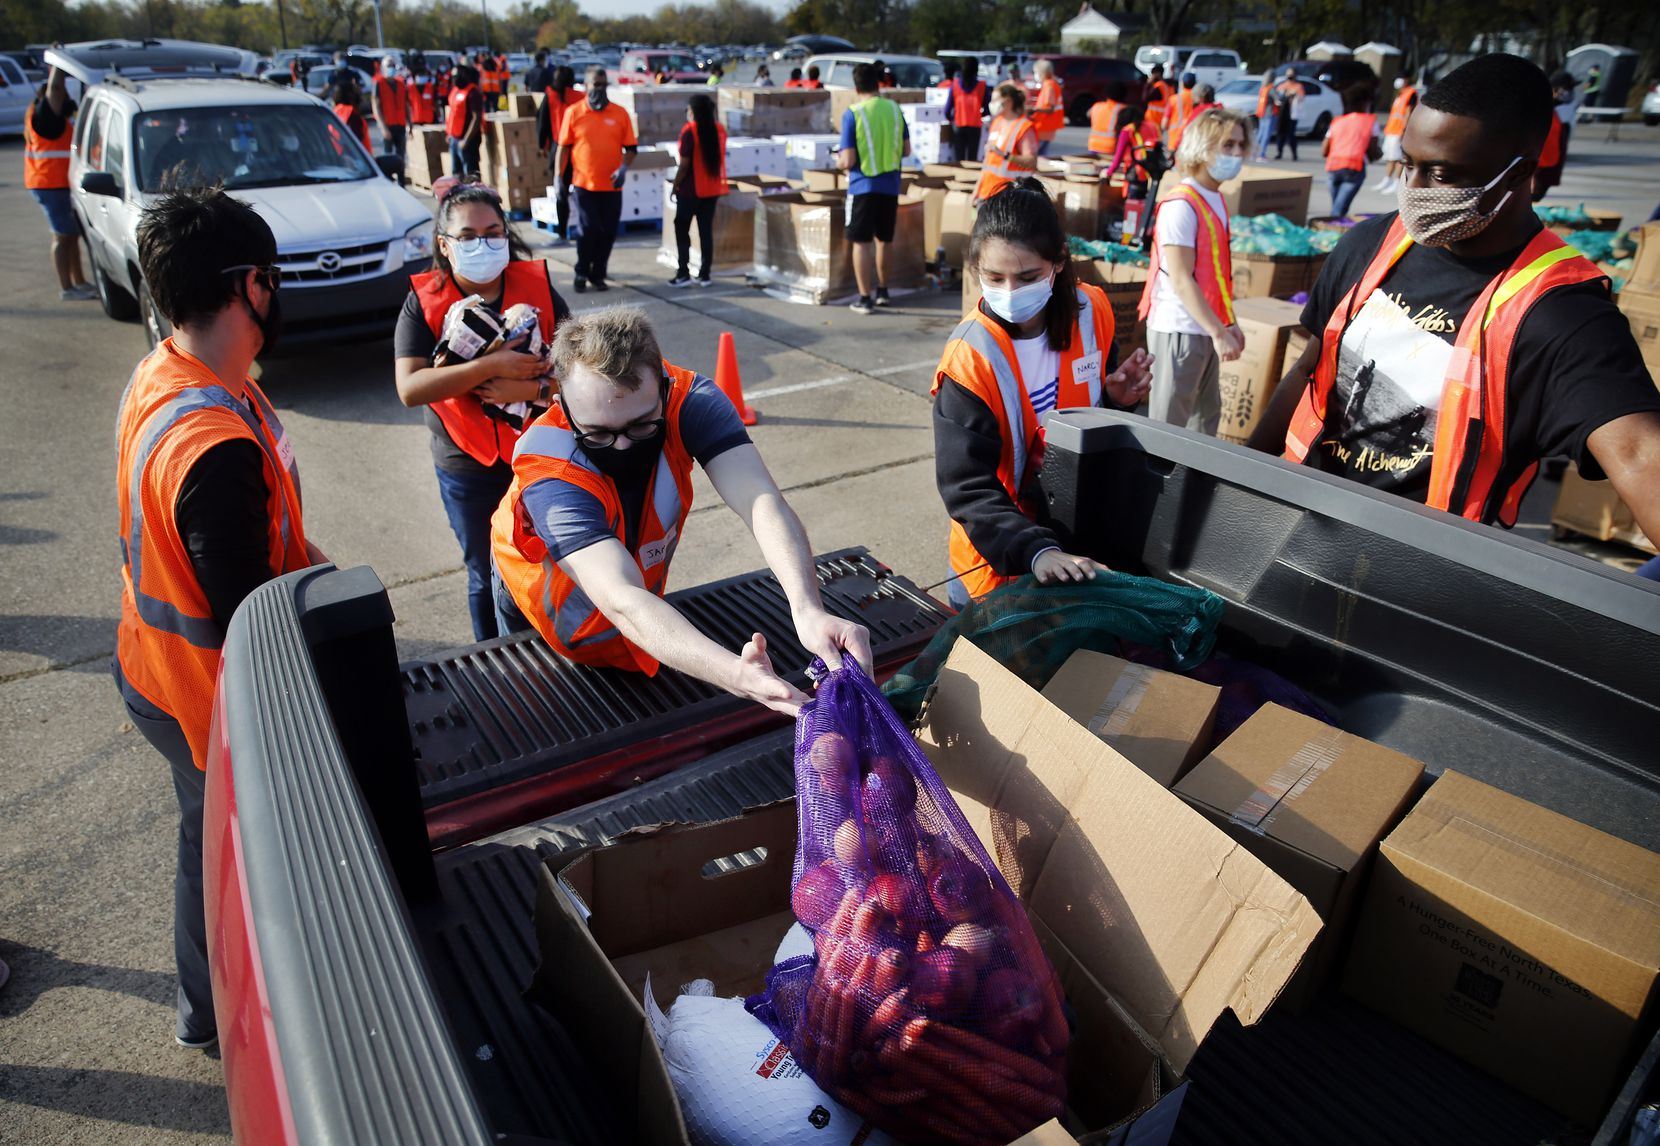 A team of volunteers loaded vehicles with bagged fruits and vegetables, cartons of dry goods and frozen turkeys for distribution to families lined up at Fair Park in Dallas, Saturday, November 14, 2020. (Tom Fox/The Dallas Morning News)